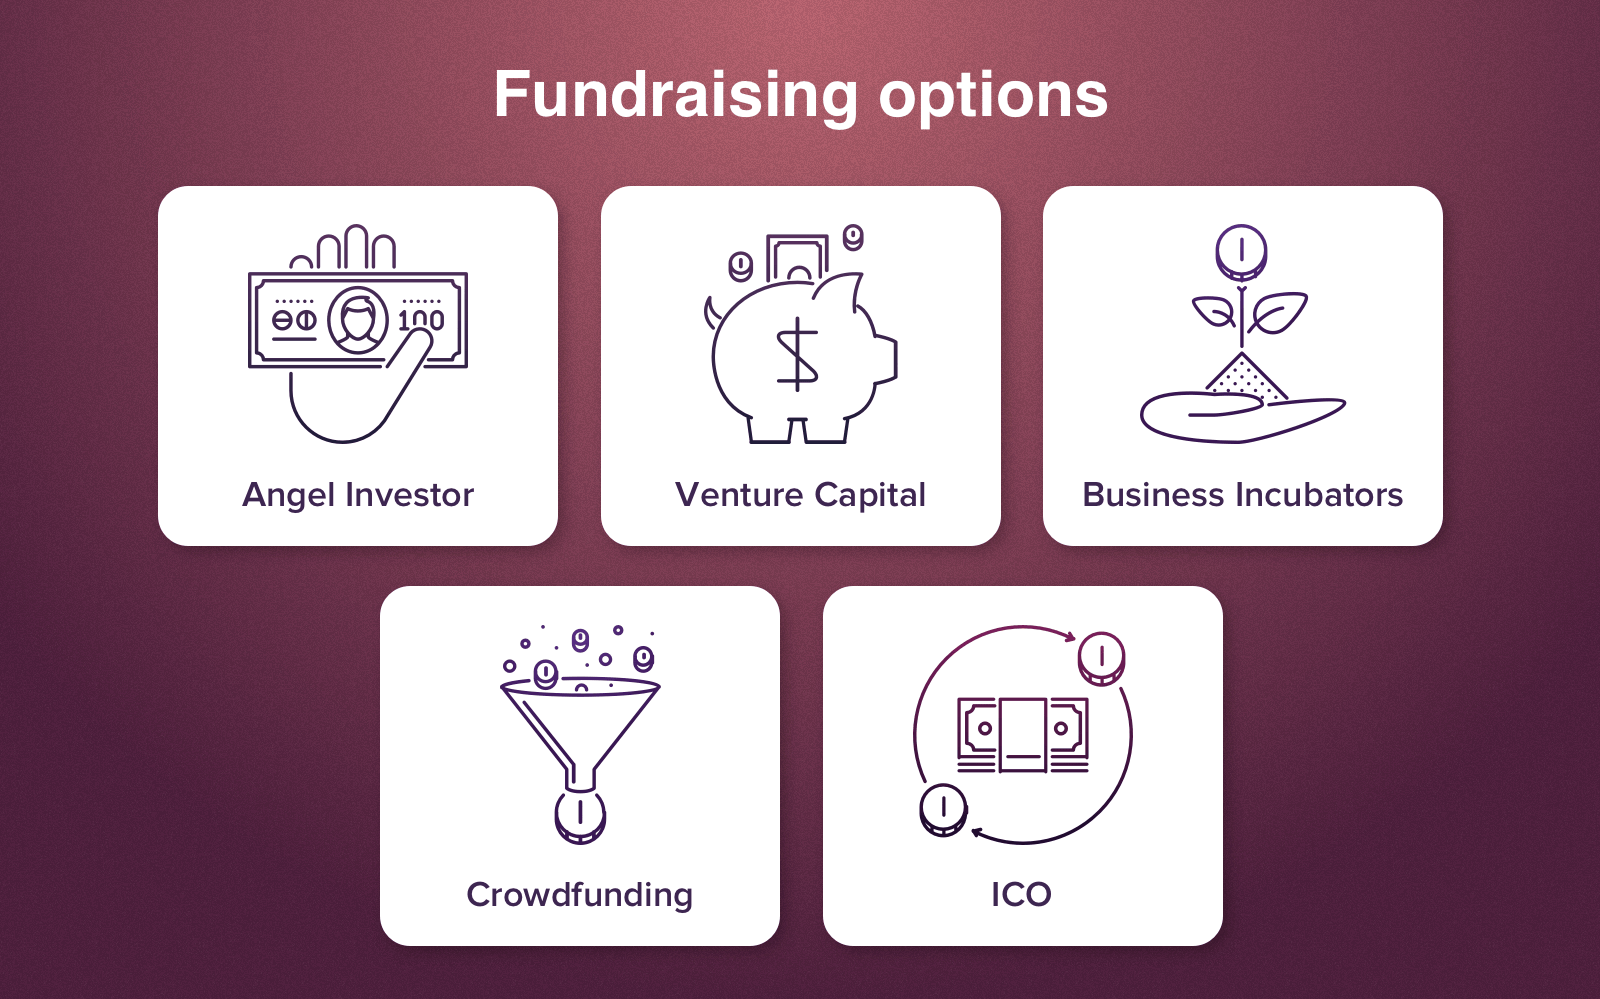 how to find an investor for a startup business - options